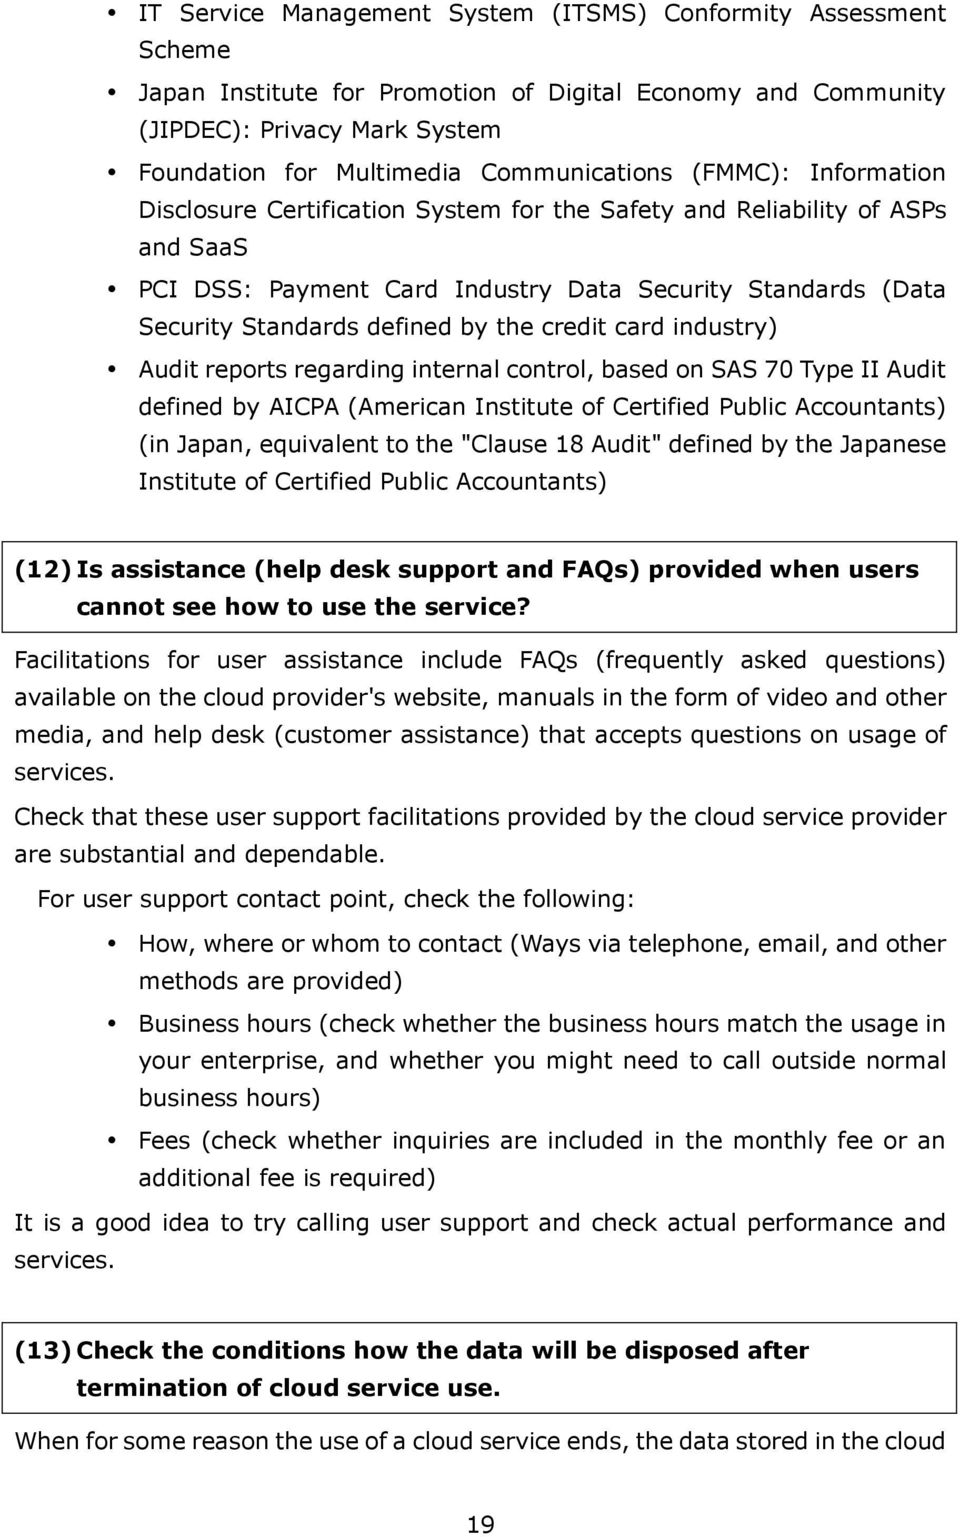 credit card industry) Audit reports regarding internal control, based on SAS 70 Type II Audit defined by AICPA (American Institute of Certified Public Accountants) (in Japan, equivalent to the